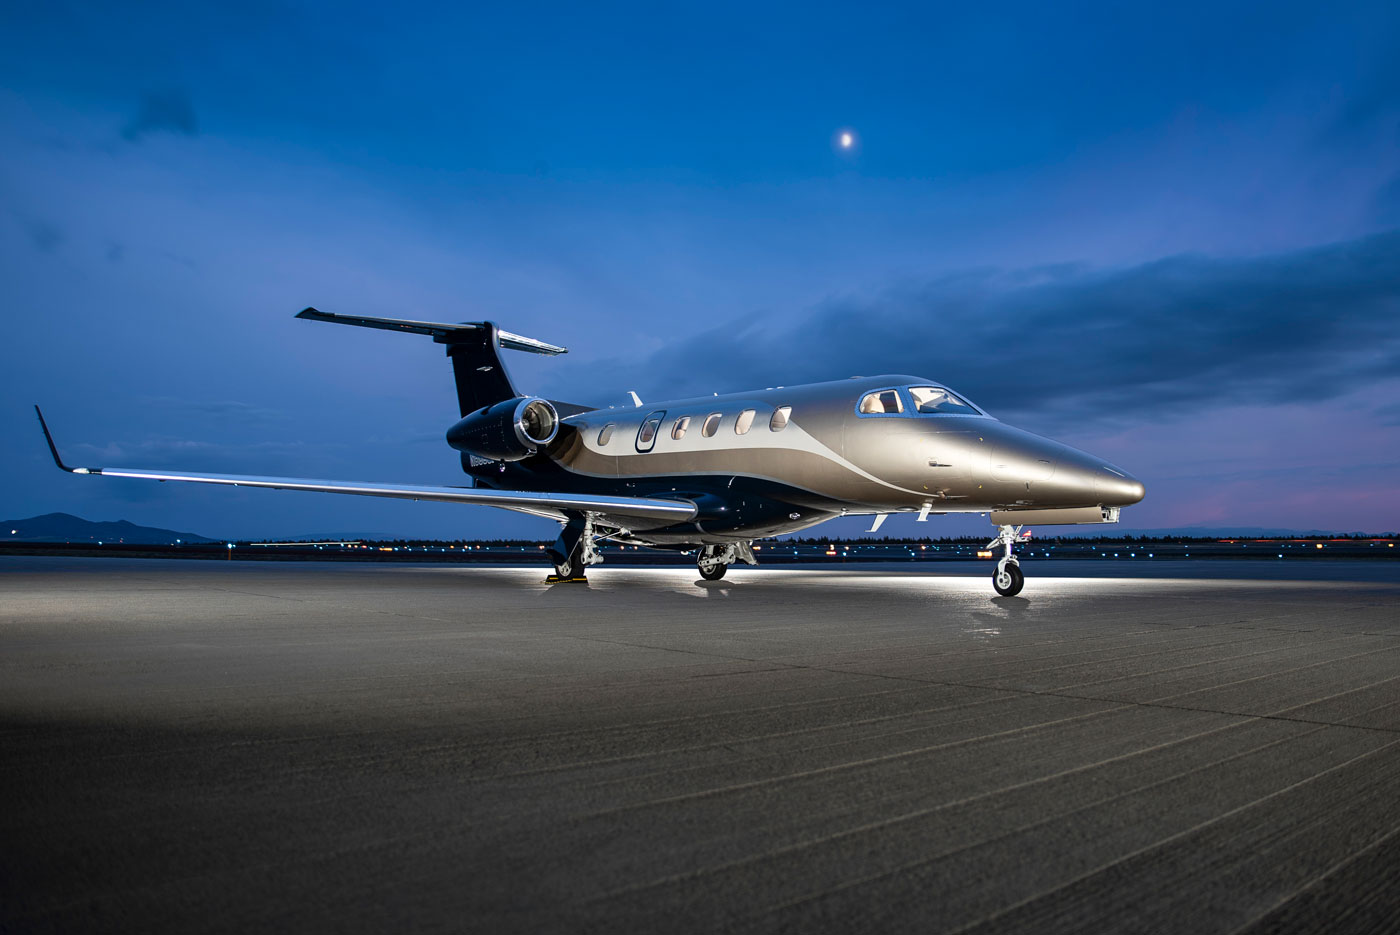 2015 Embraer Phenom 300 Exterior for sale